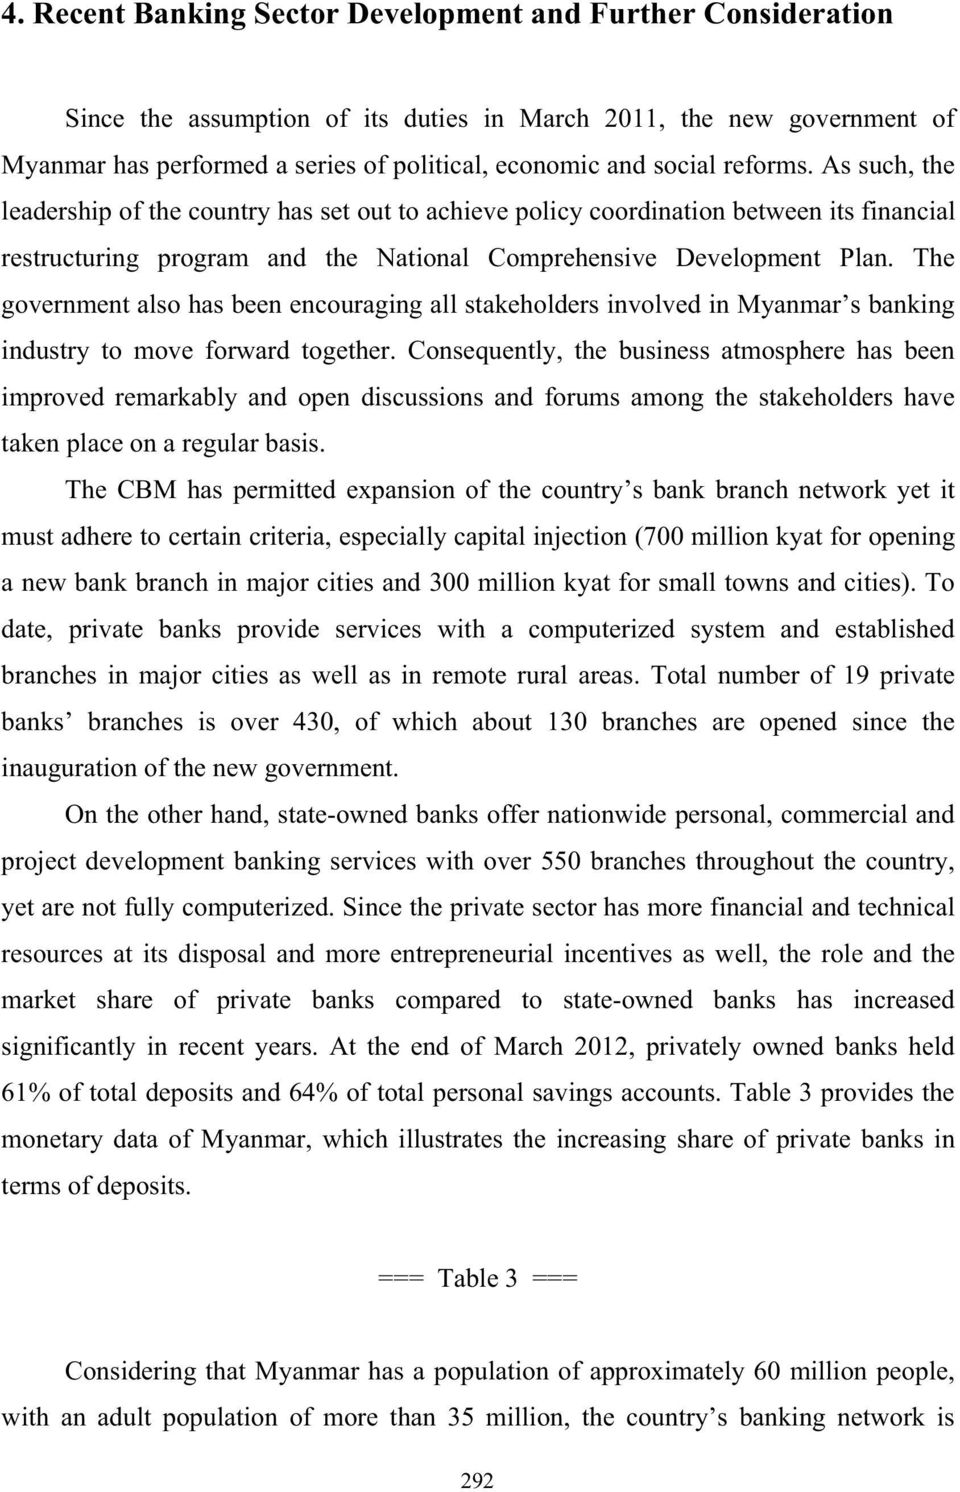 The government also has been encouraging all stakeholders involved in Myanmar s banking industry to move forward together.